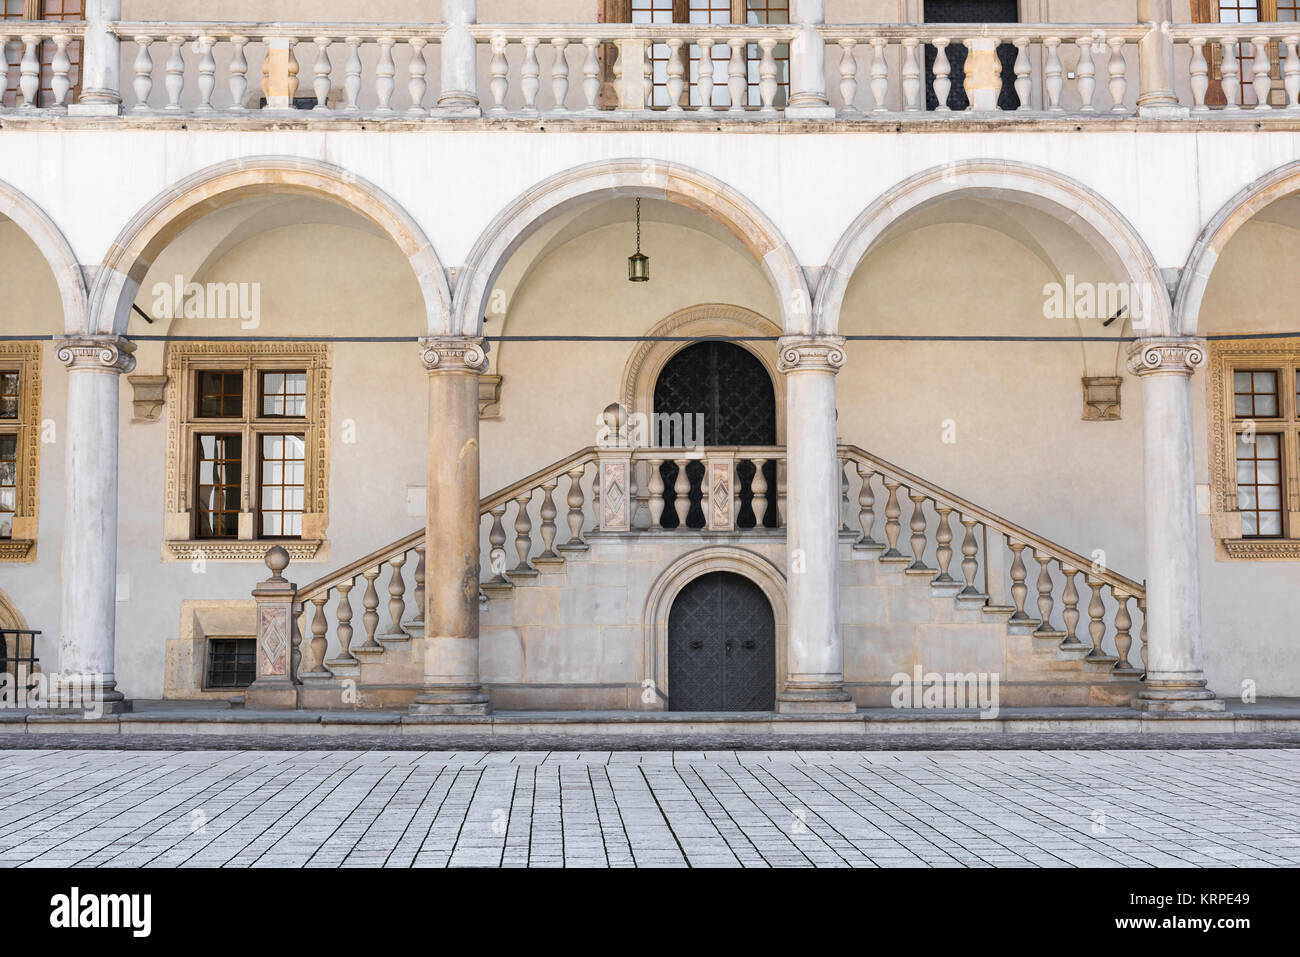 Renaissance castle, a section of the arcaded Renaissance courtyard at the centre of the Wawel Royal Castle in Krakow, - Stock Image